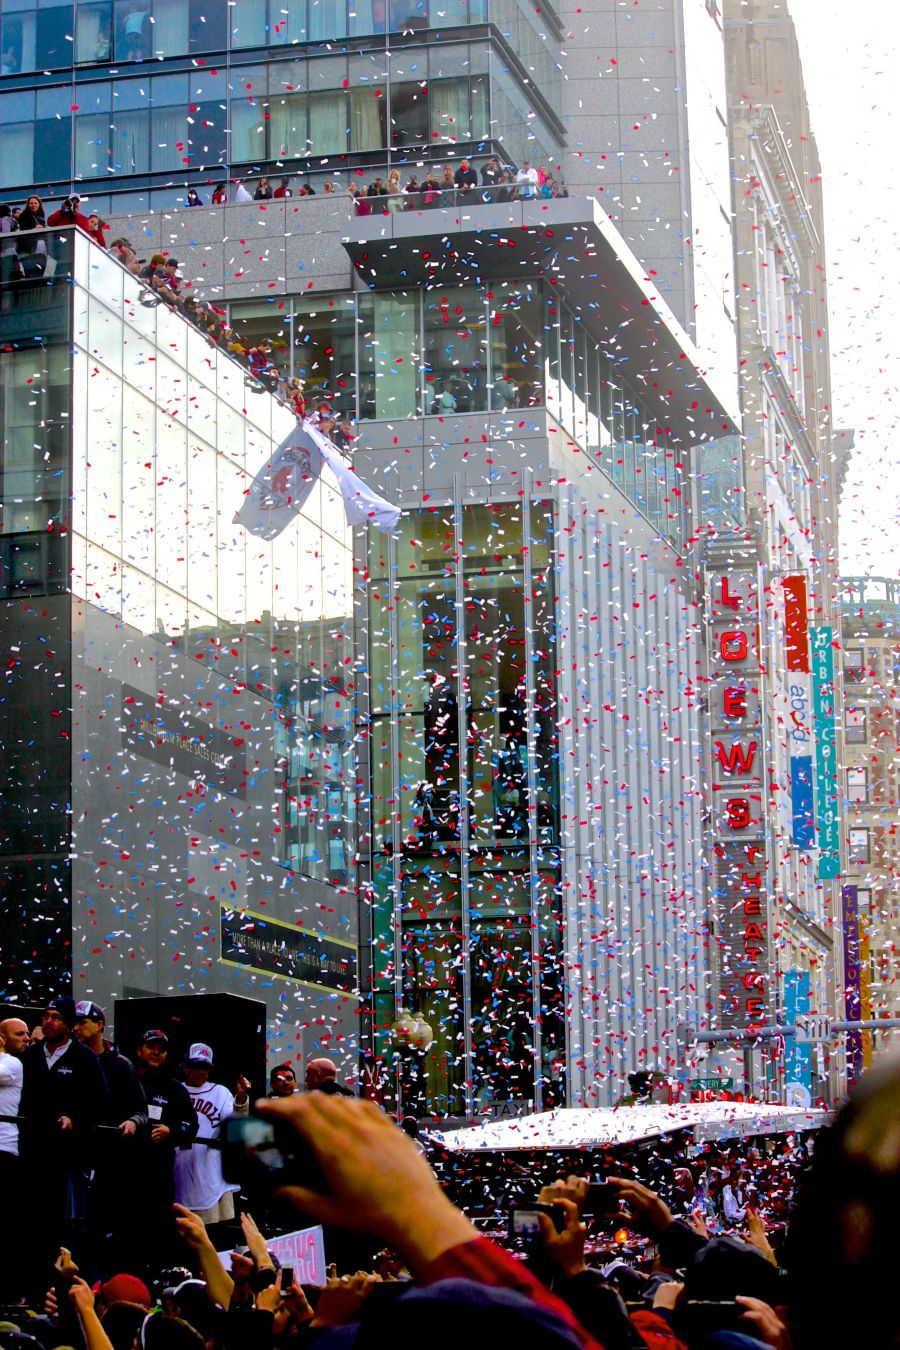 boston red sox world series celebration 2013 confetti